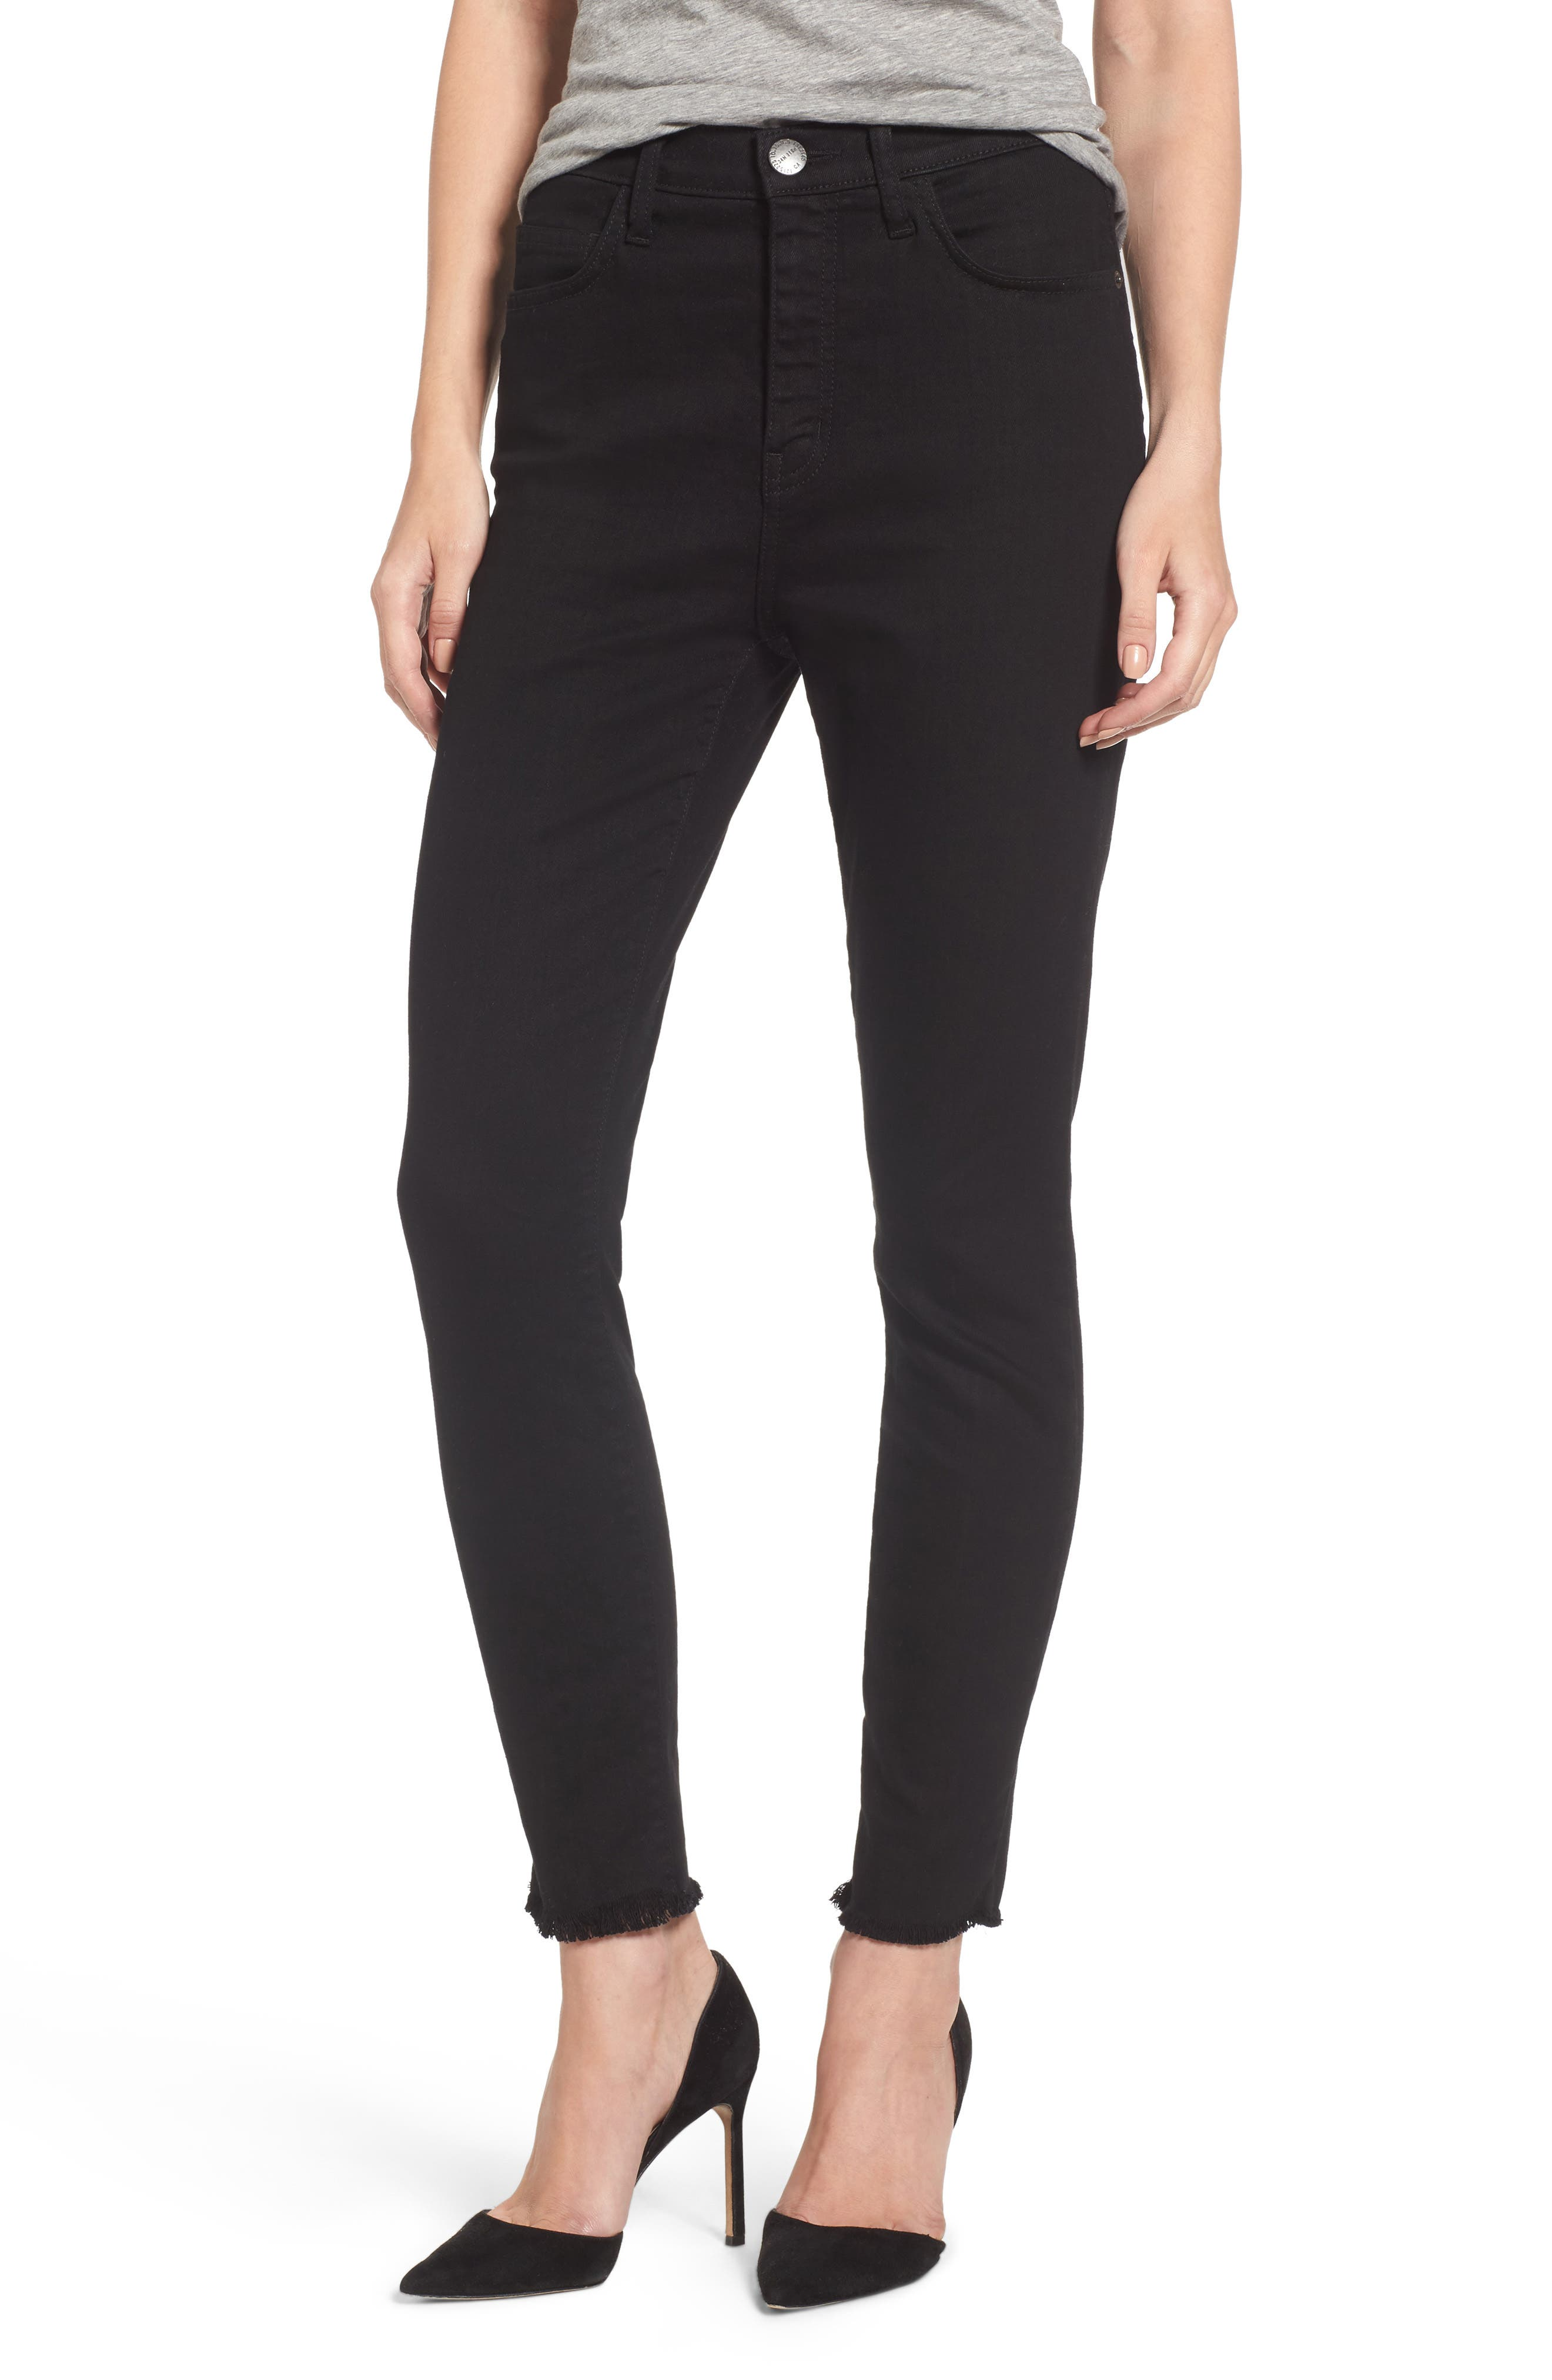 The Super High Waist Stiletto Ankle Skinny Jeans,                             Main thumbnail 1, color,                             005